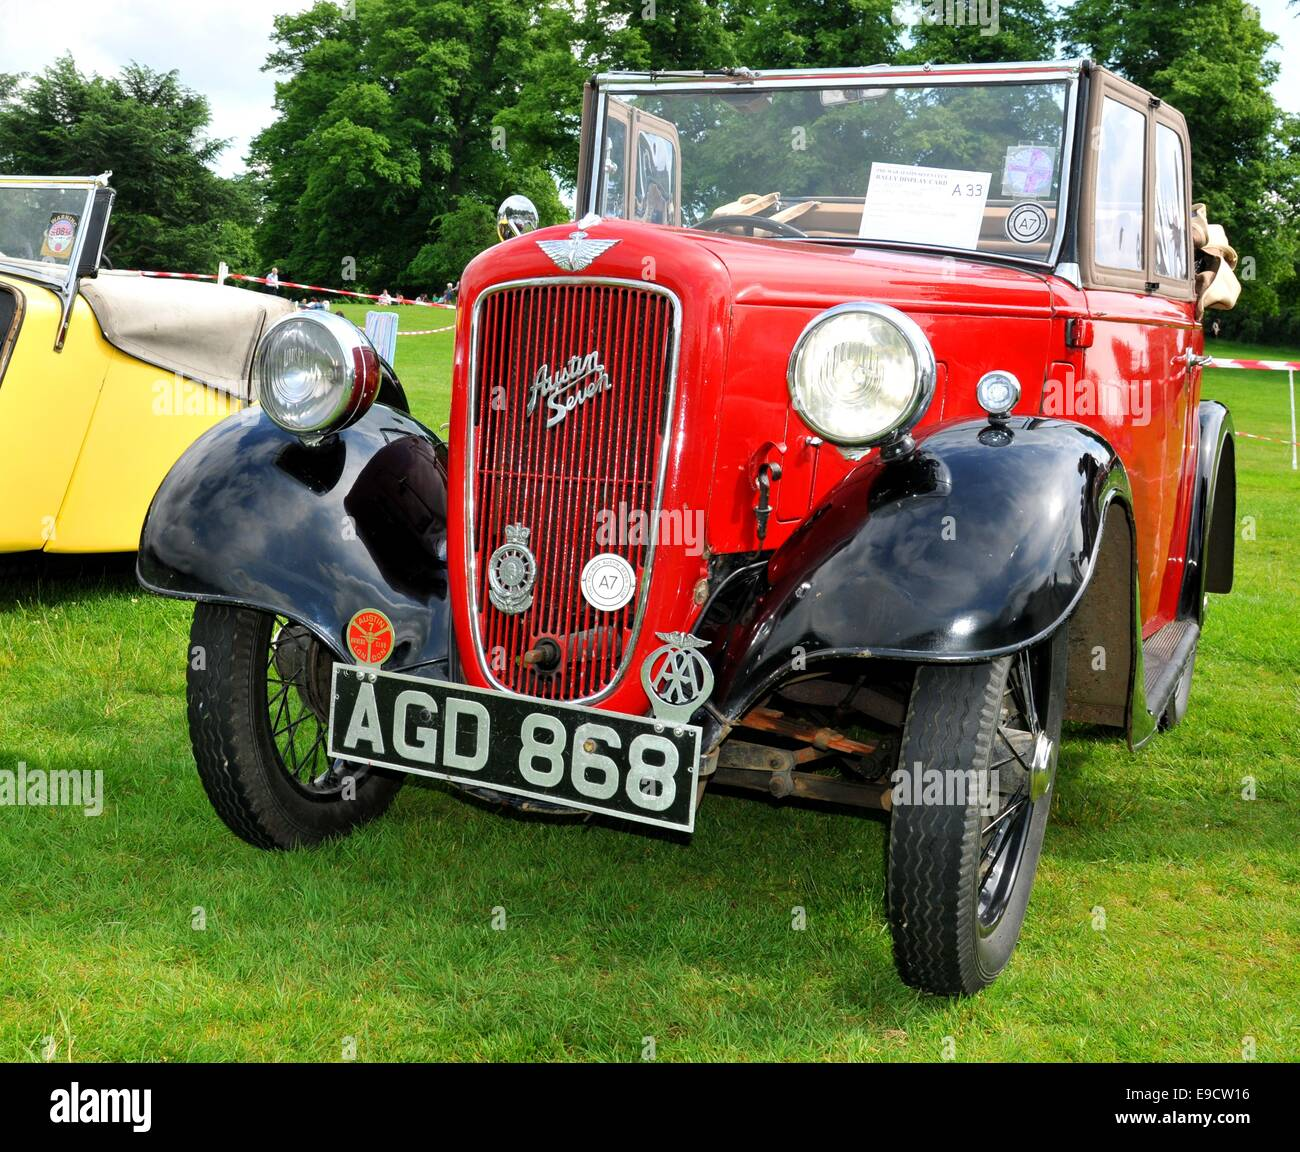 NOTTINGHAM, UK. JUNE 1, 2014: Front view of vintage car for sale in ...